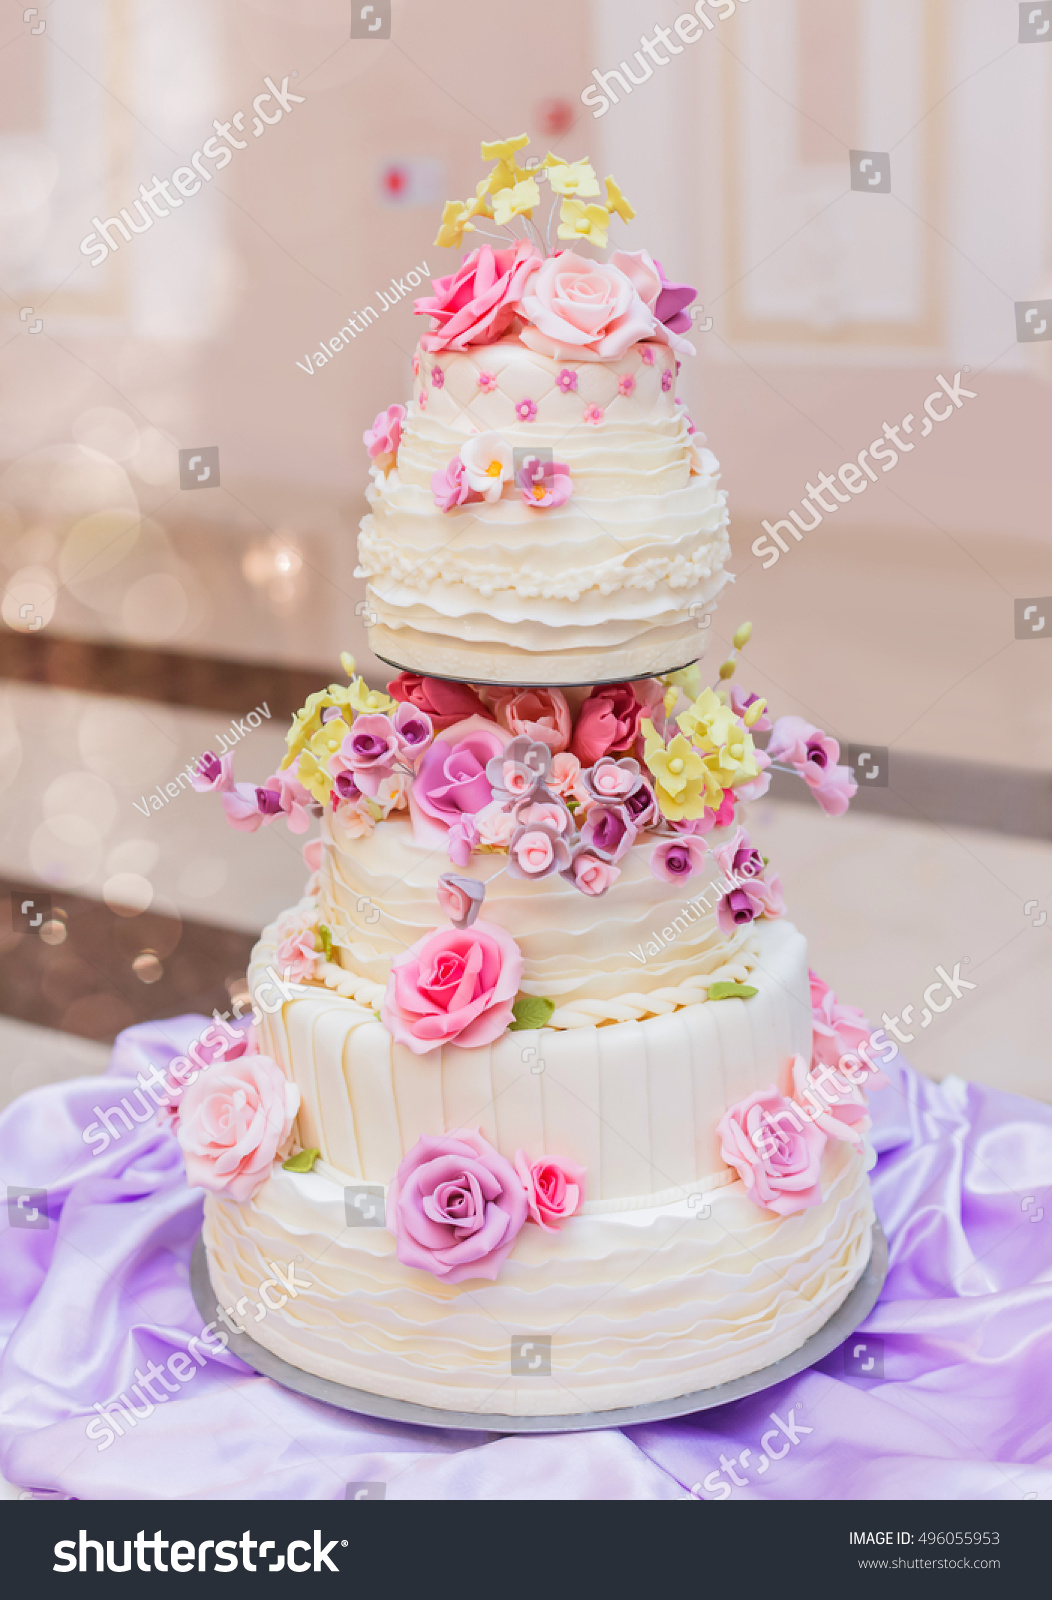 White Wedding Cake With Flowers On Holiday Background Dessert